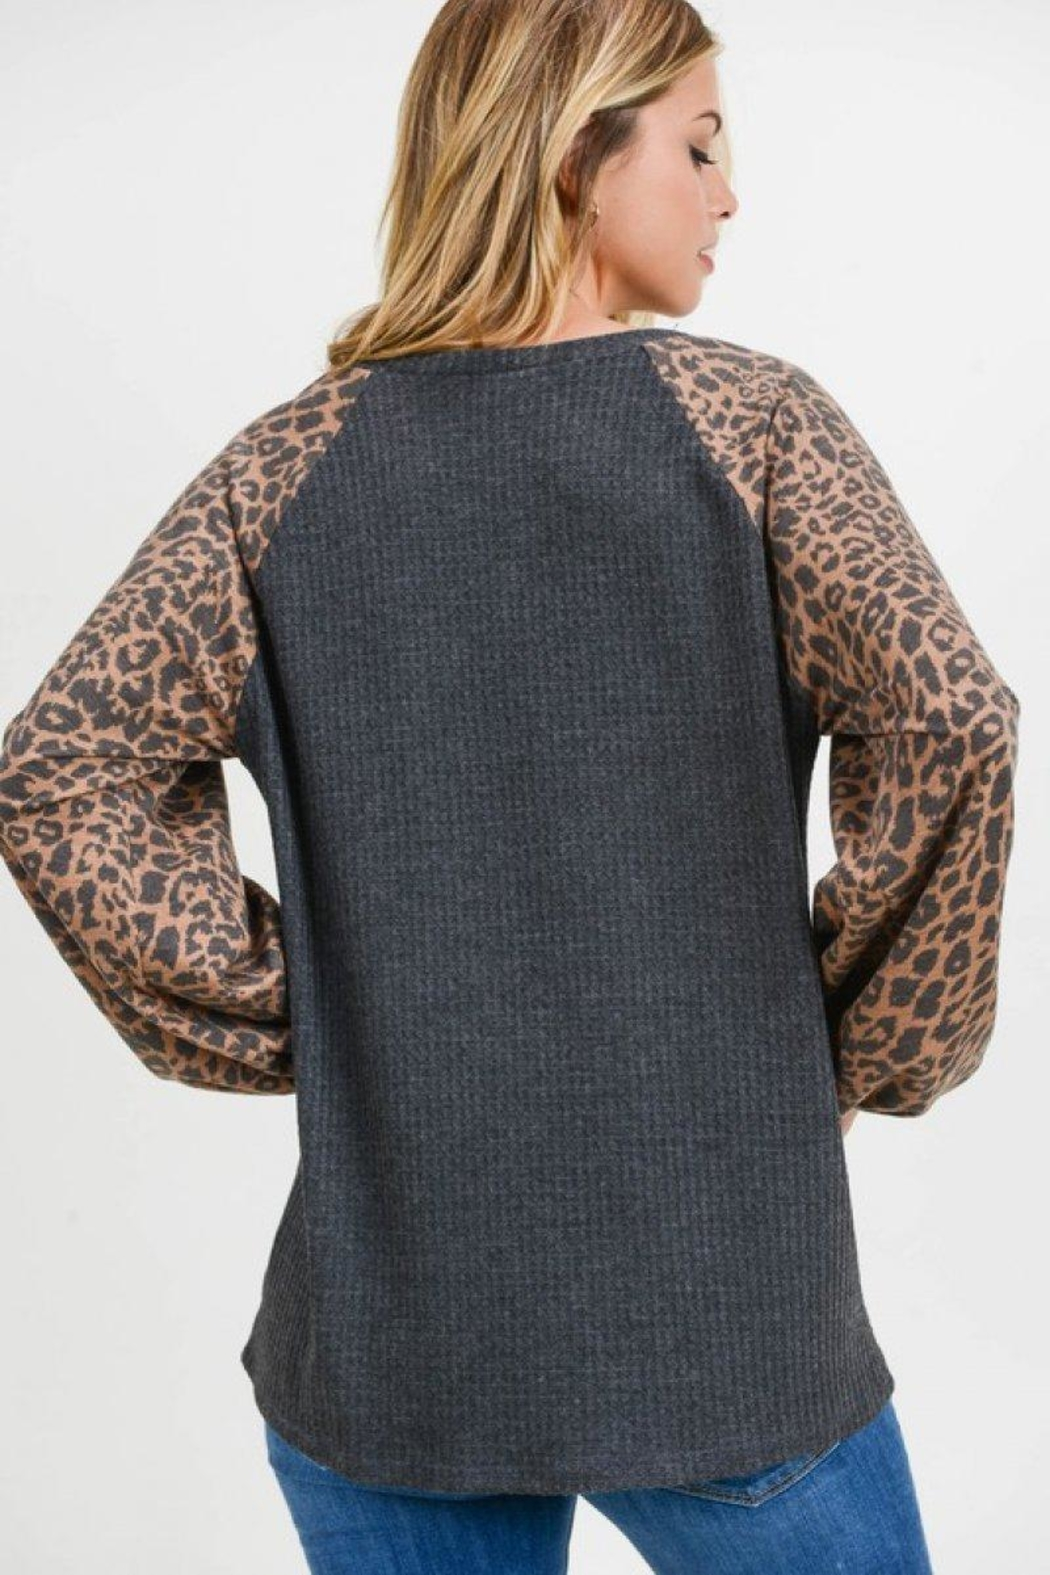 First Love Leopard Contrast Top - Back Cropped Image